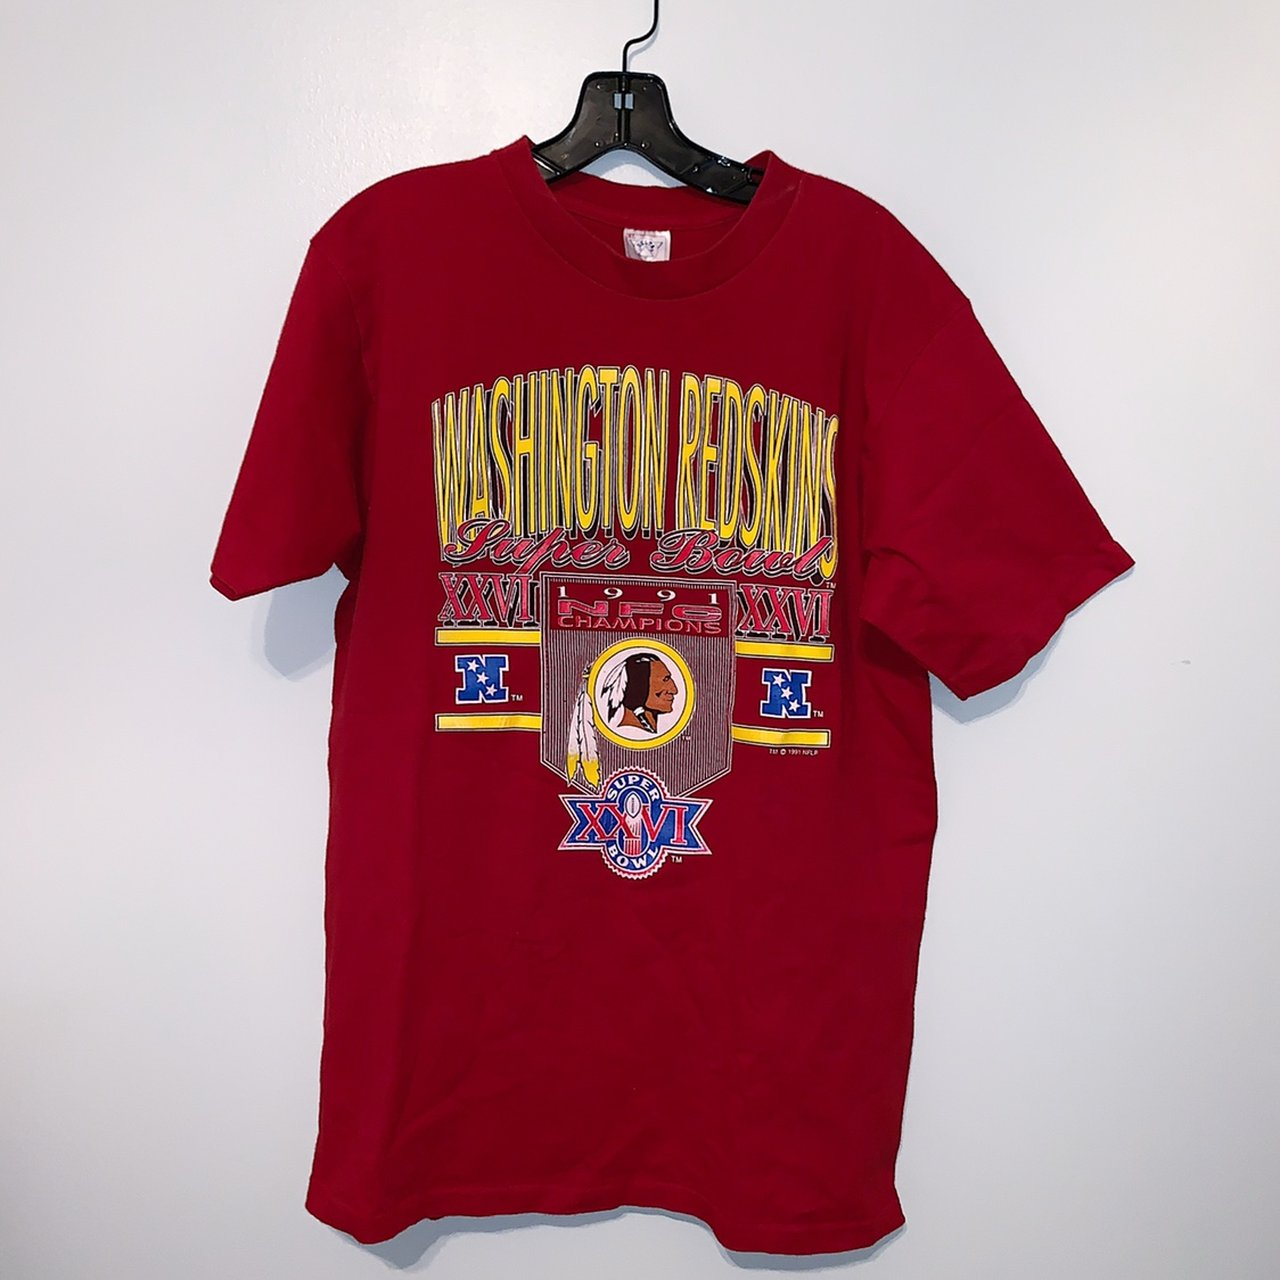 Vintage Washington Redskins Super Bowl XXVI single stitch on - Depop 5c6c5d06d